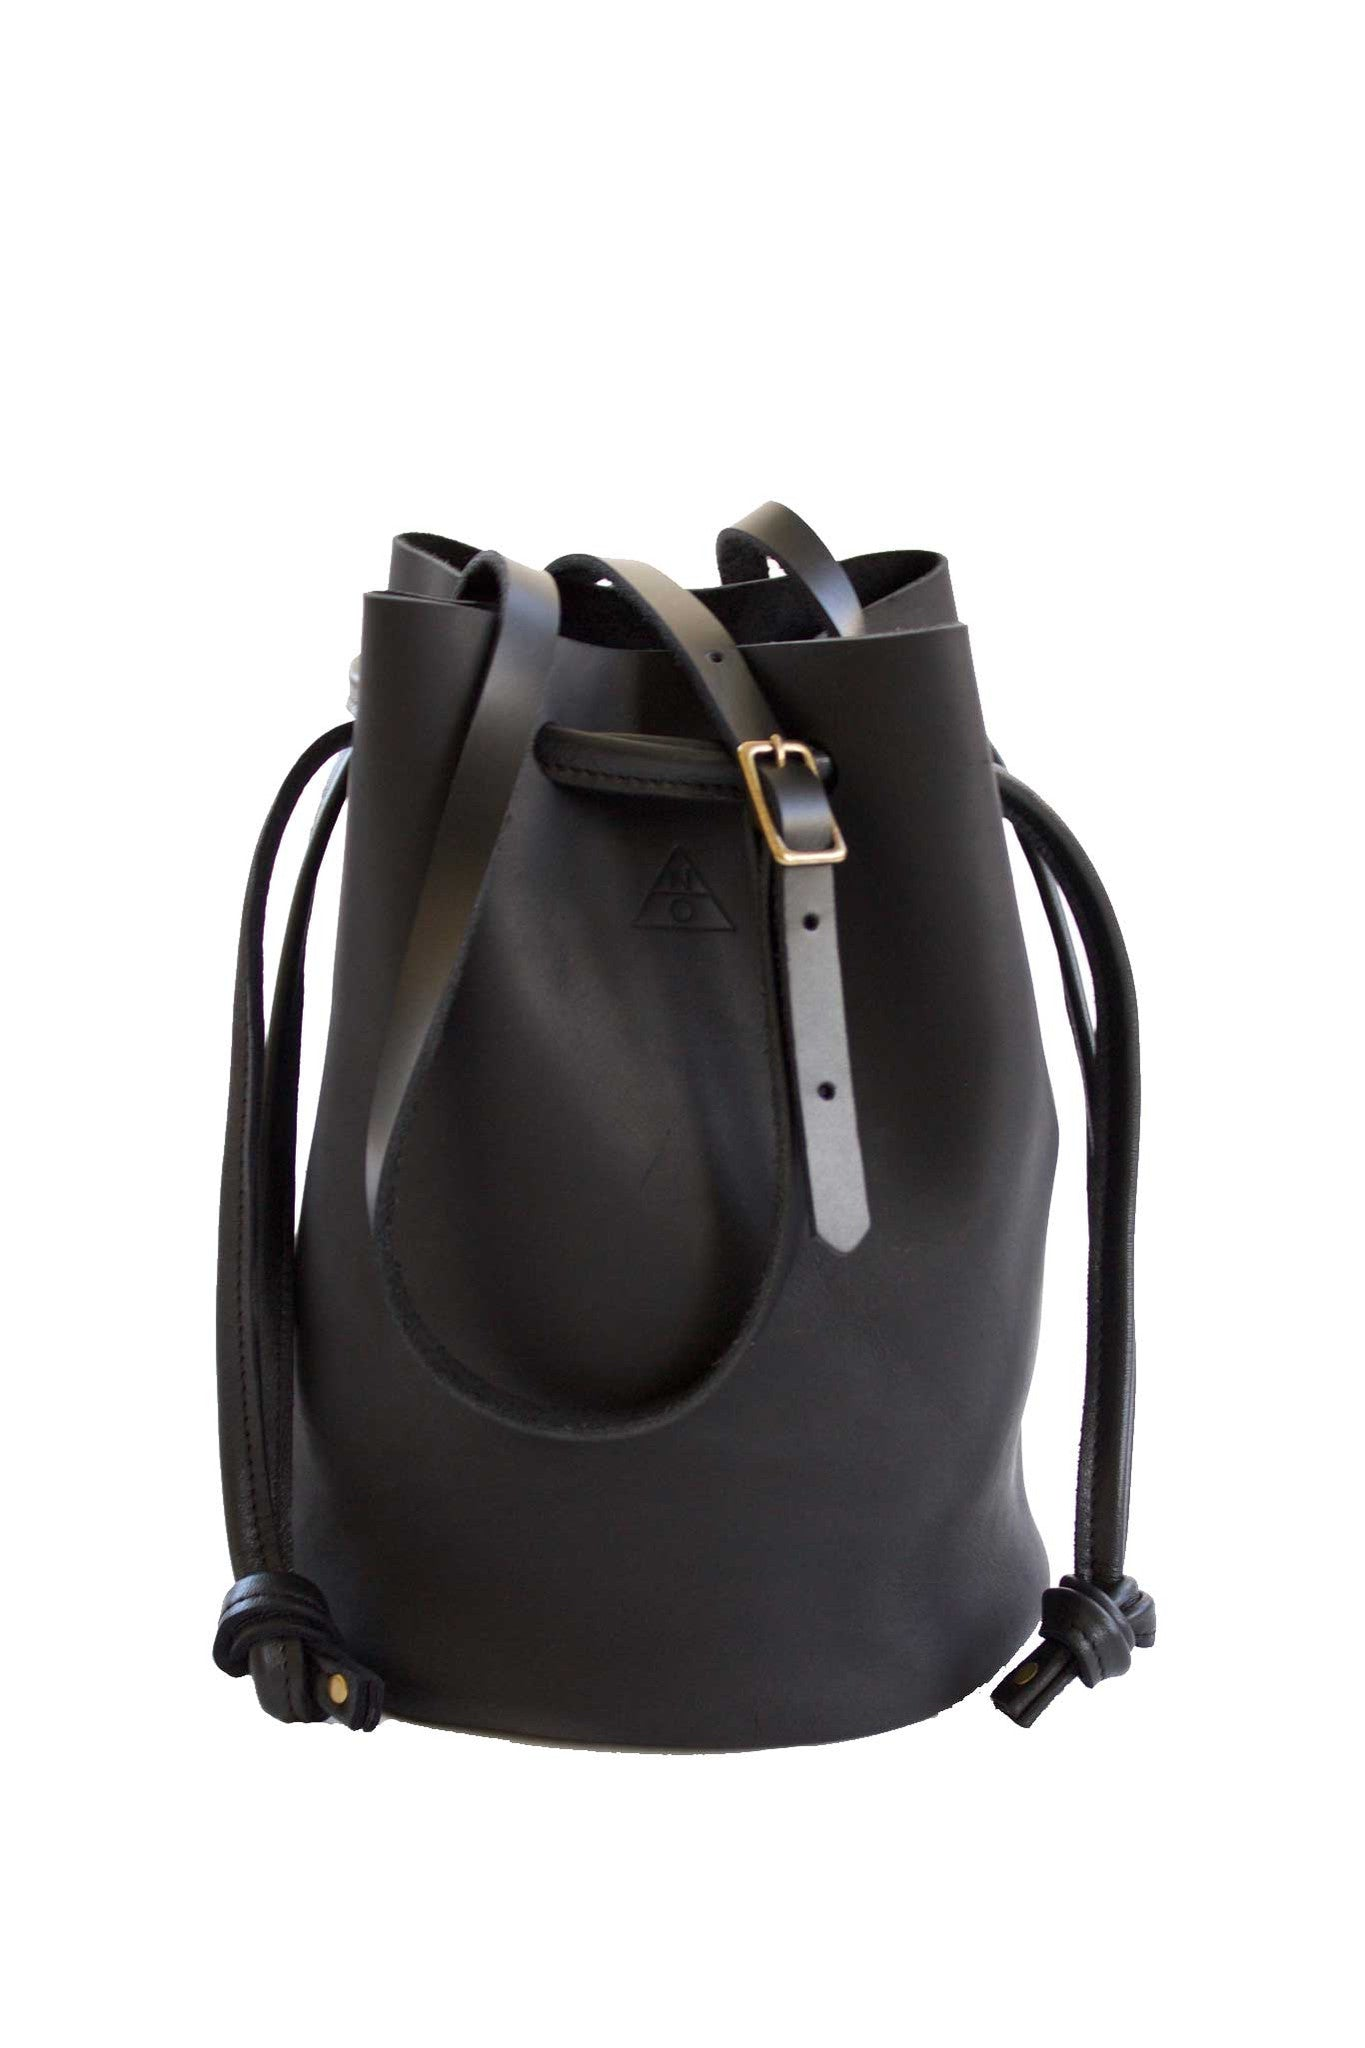 Ana Minimal Black Leather Drawstring Bucket Bag